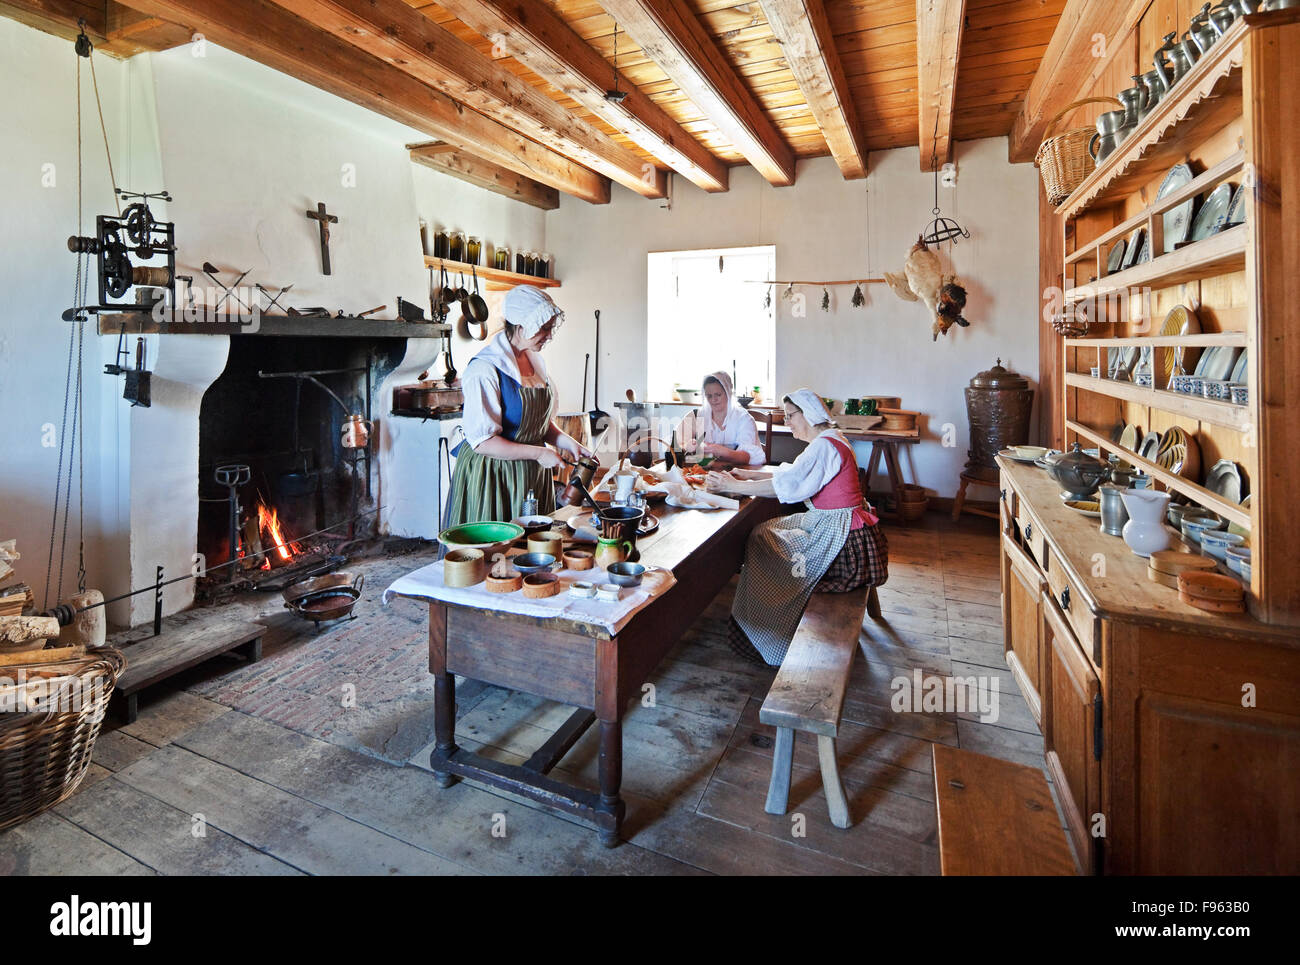 Three women in servant's costumes reenacting a scene of everyday life at 18th Century Fortress of Louisbourg. - Stock Image